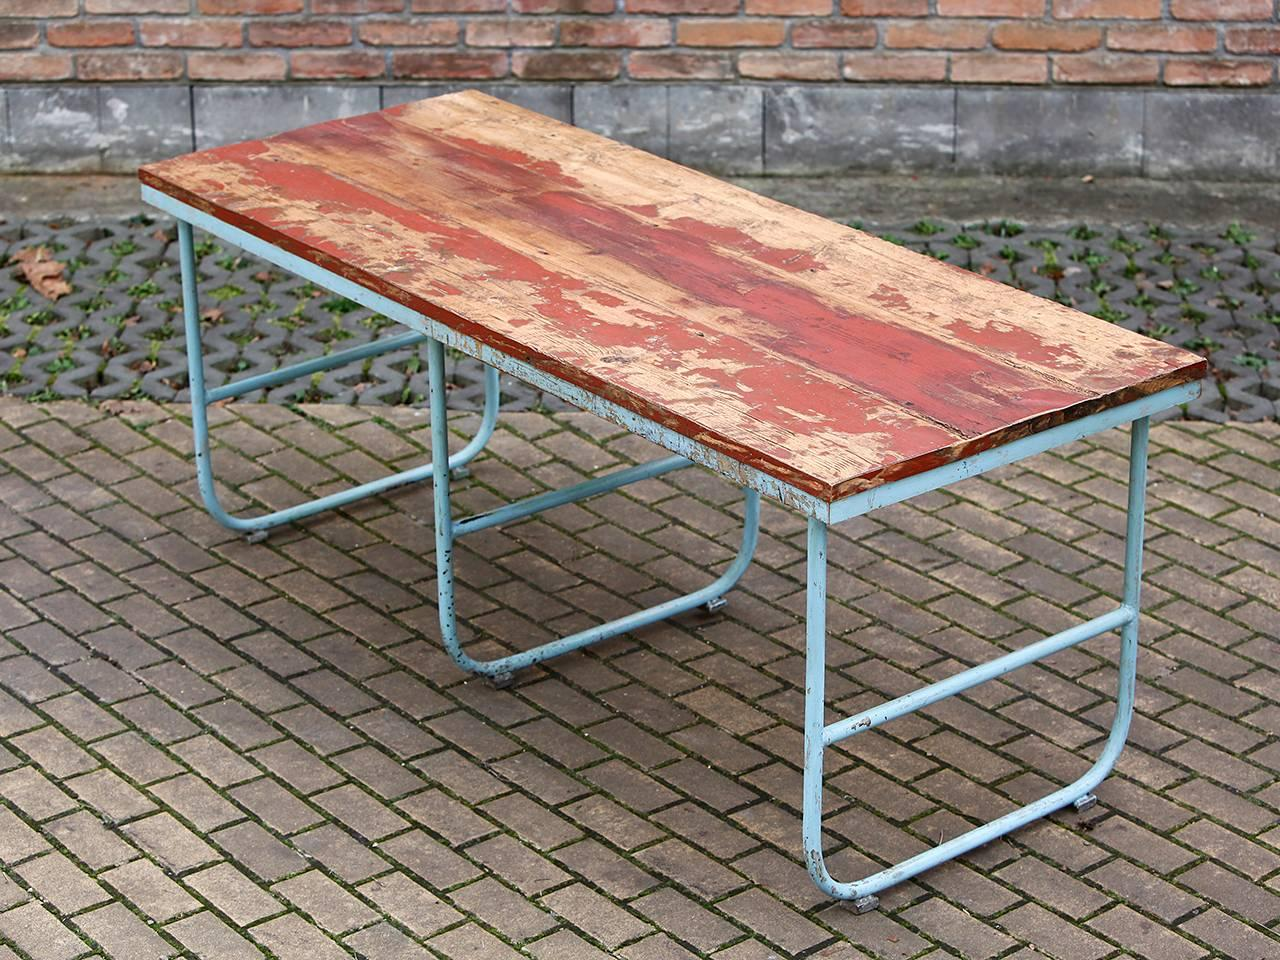 Czech Midcentury Industrial Dining Table, 1950s For Sale